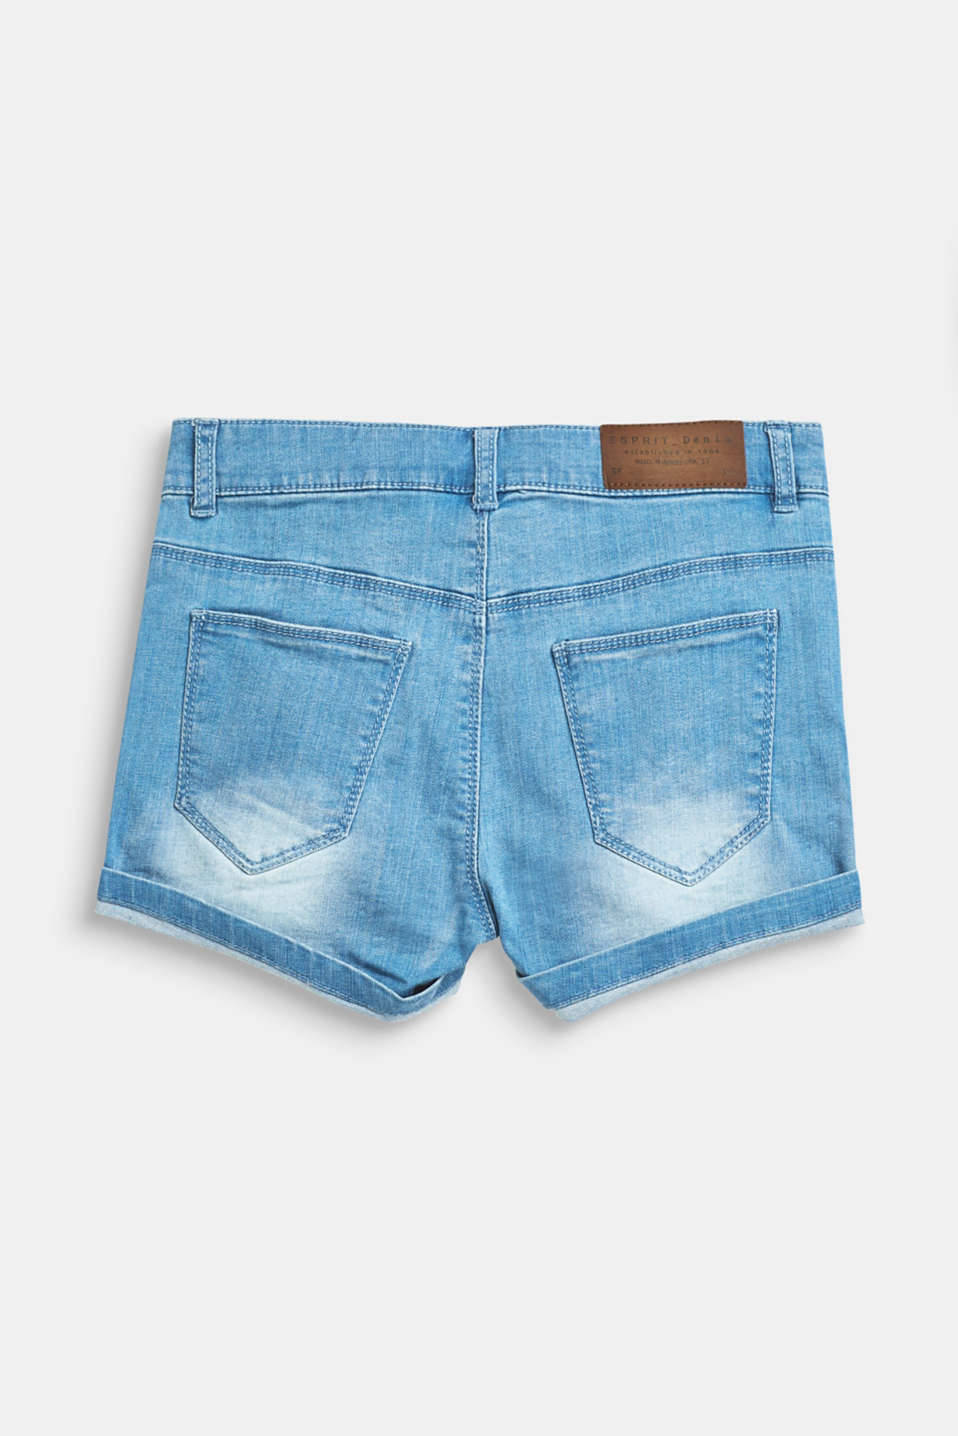 Stretch denim shorts with turn-ups and an adjustable waistband, LCBLUE LIGHT WAS, detail image number 1